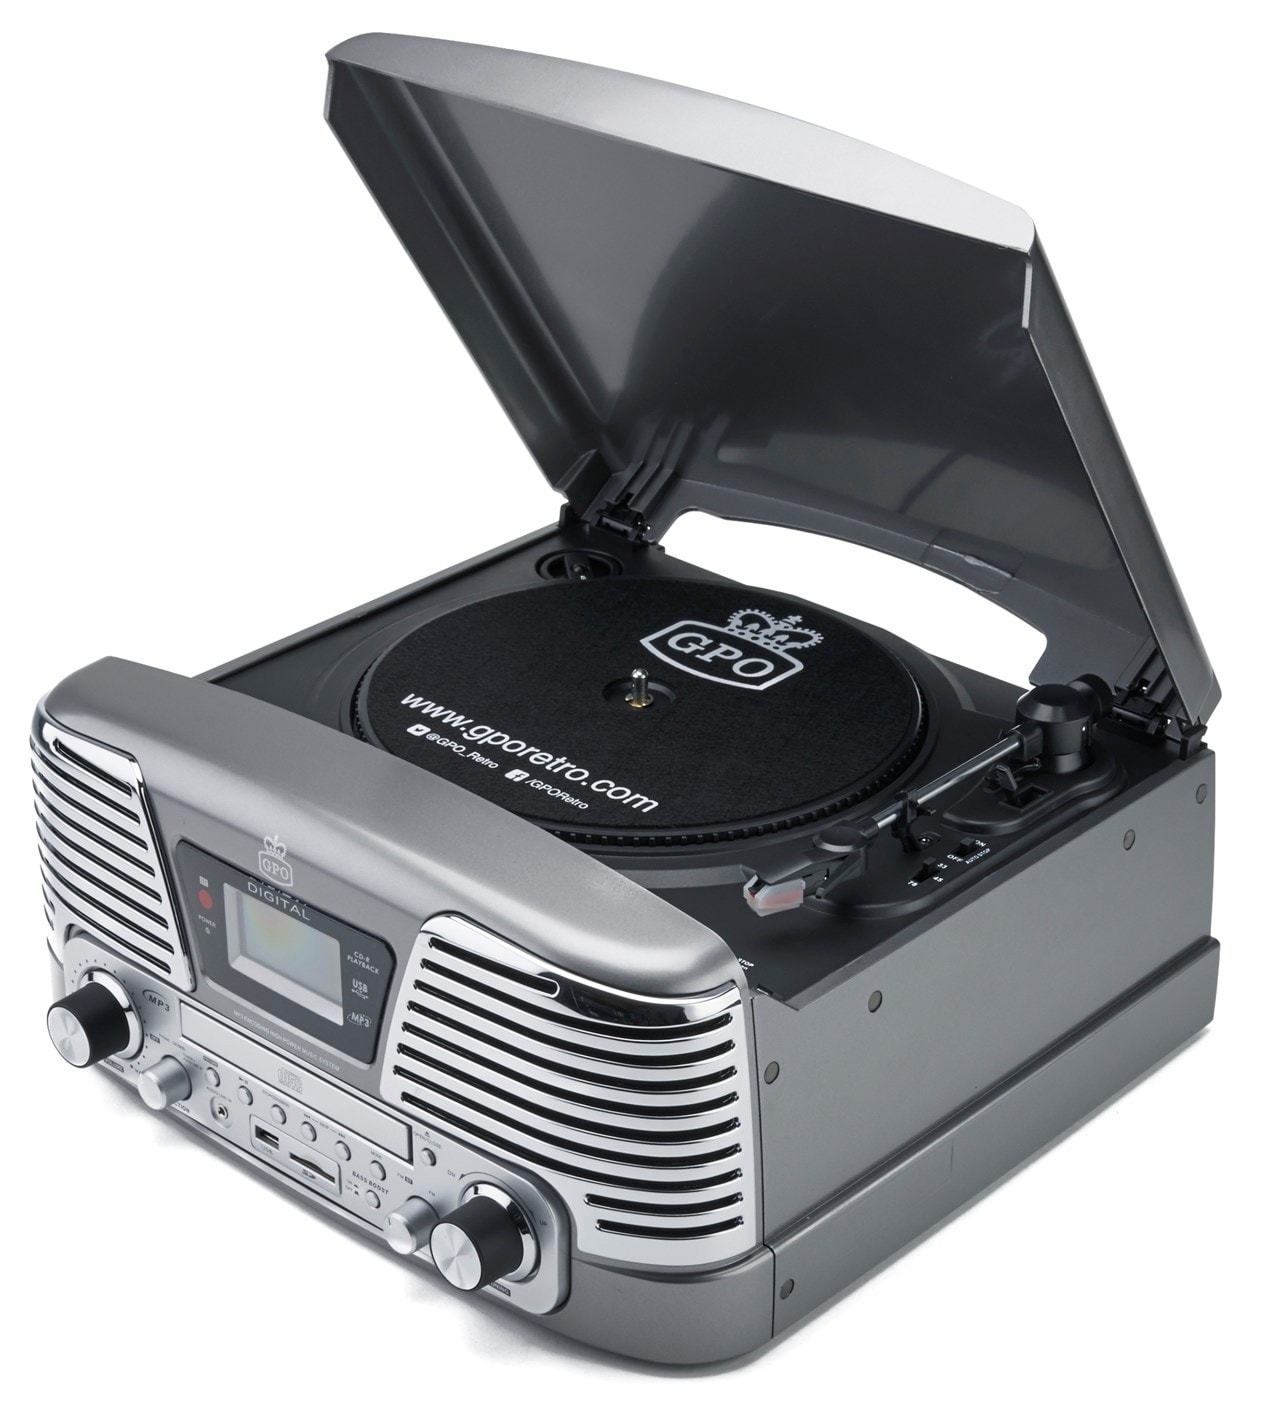 GPO Memphis Silver USB Turntable with CD Player & Radio (online only) - 1